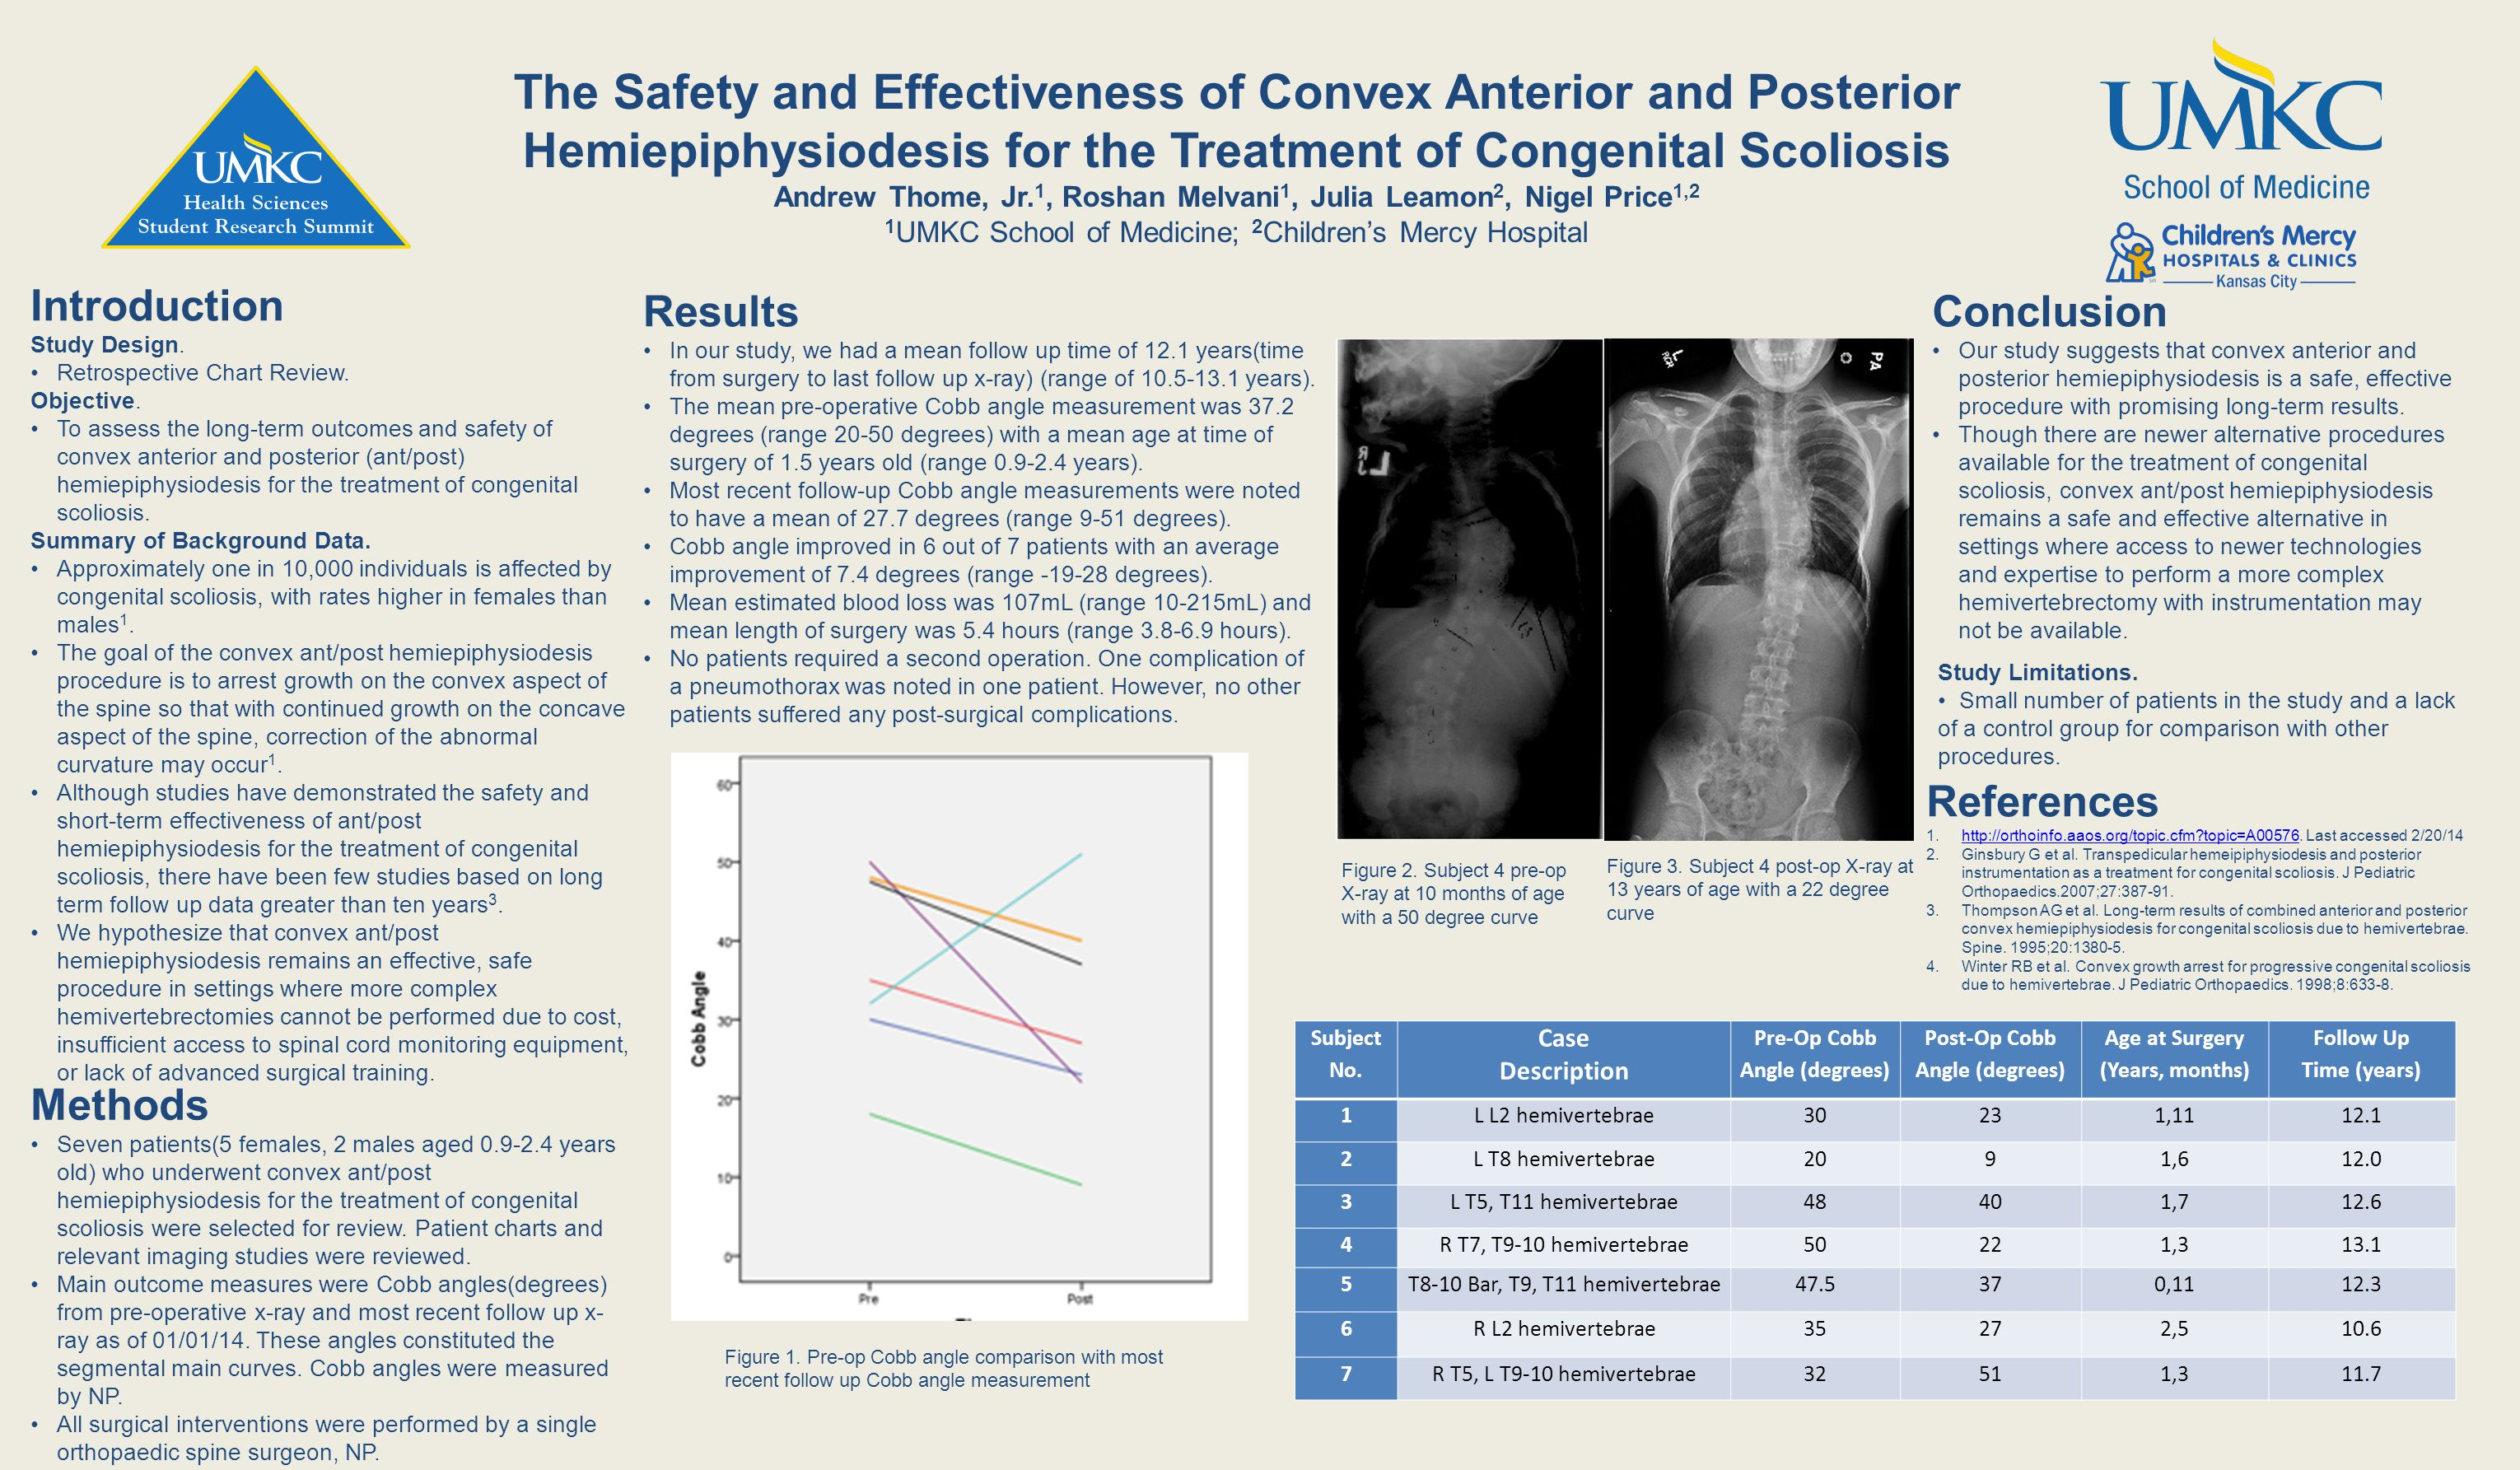 The Safety and Effectiveness of Convex Anterior and Posterior Hemiepiphysiodesis for the Treatment of Congenital Scoliosis Andrew Thome, Jr.